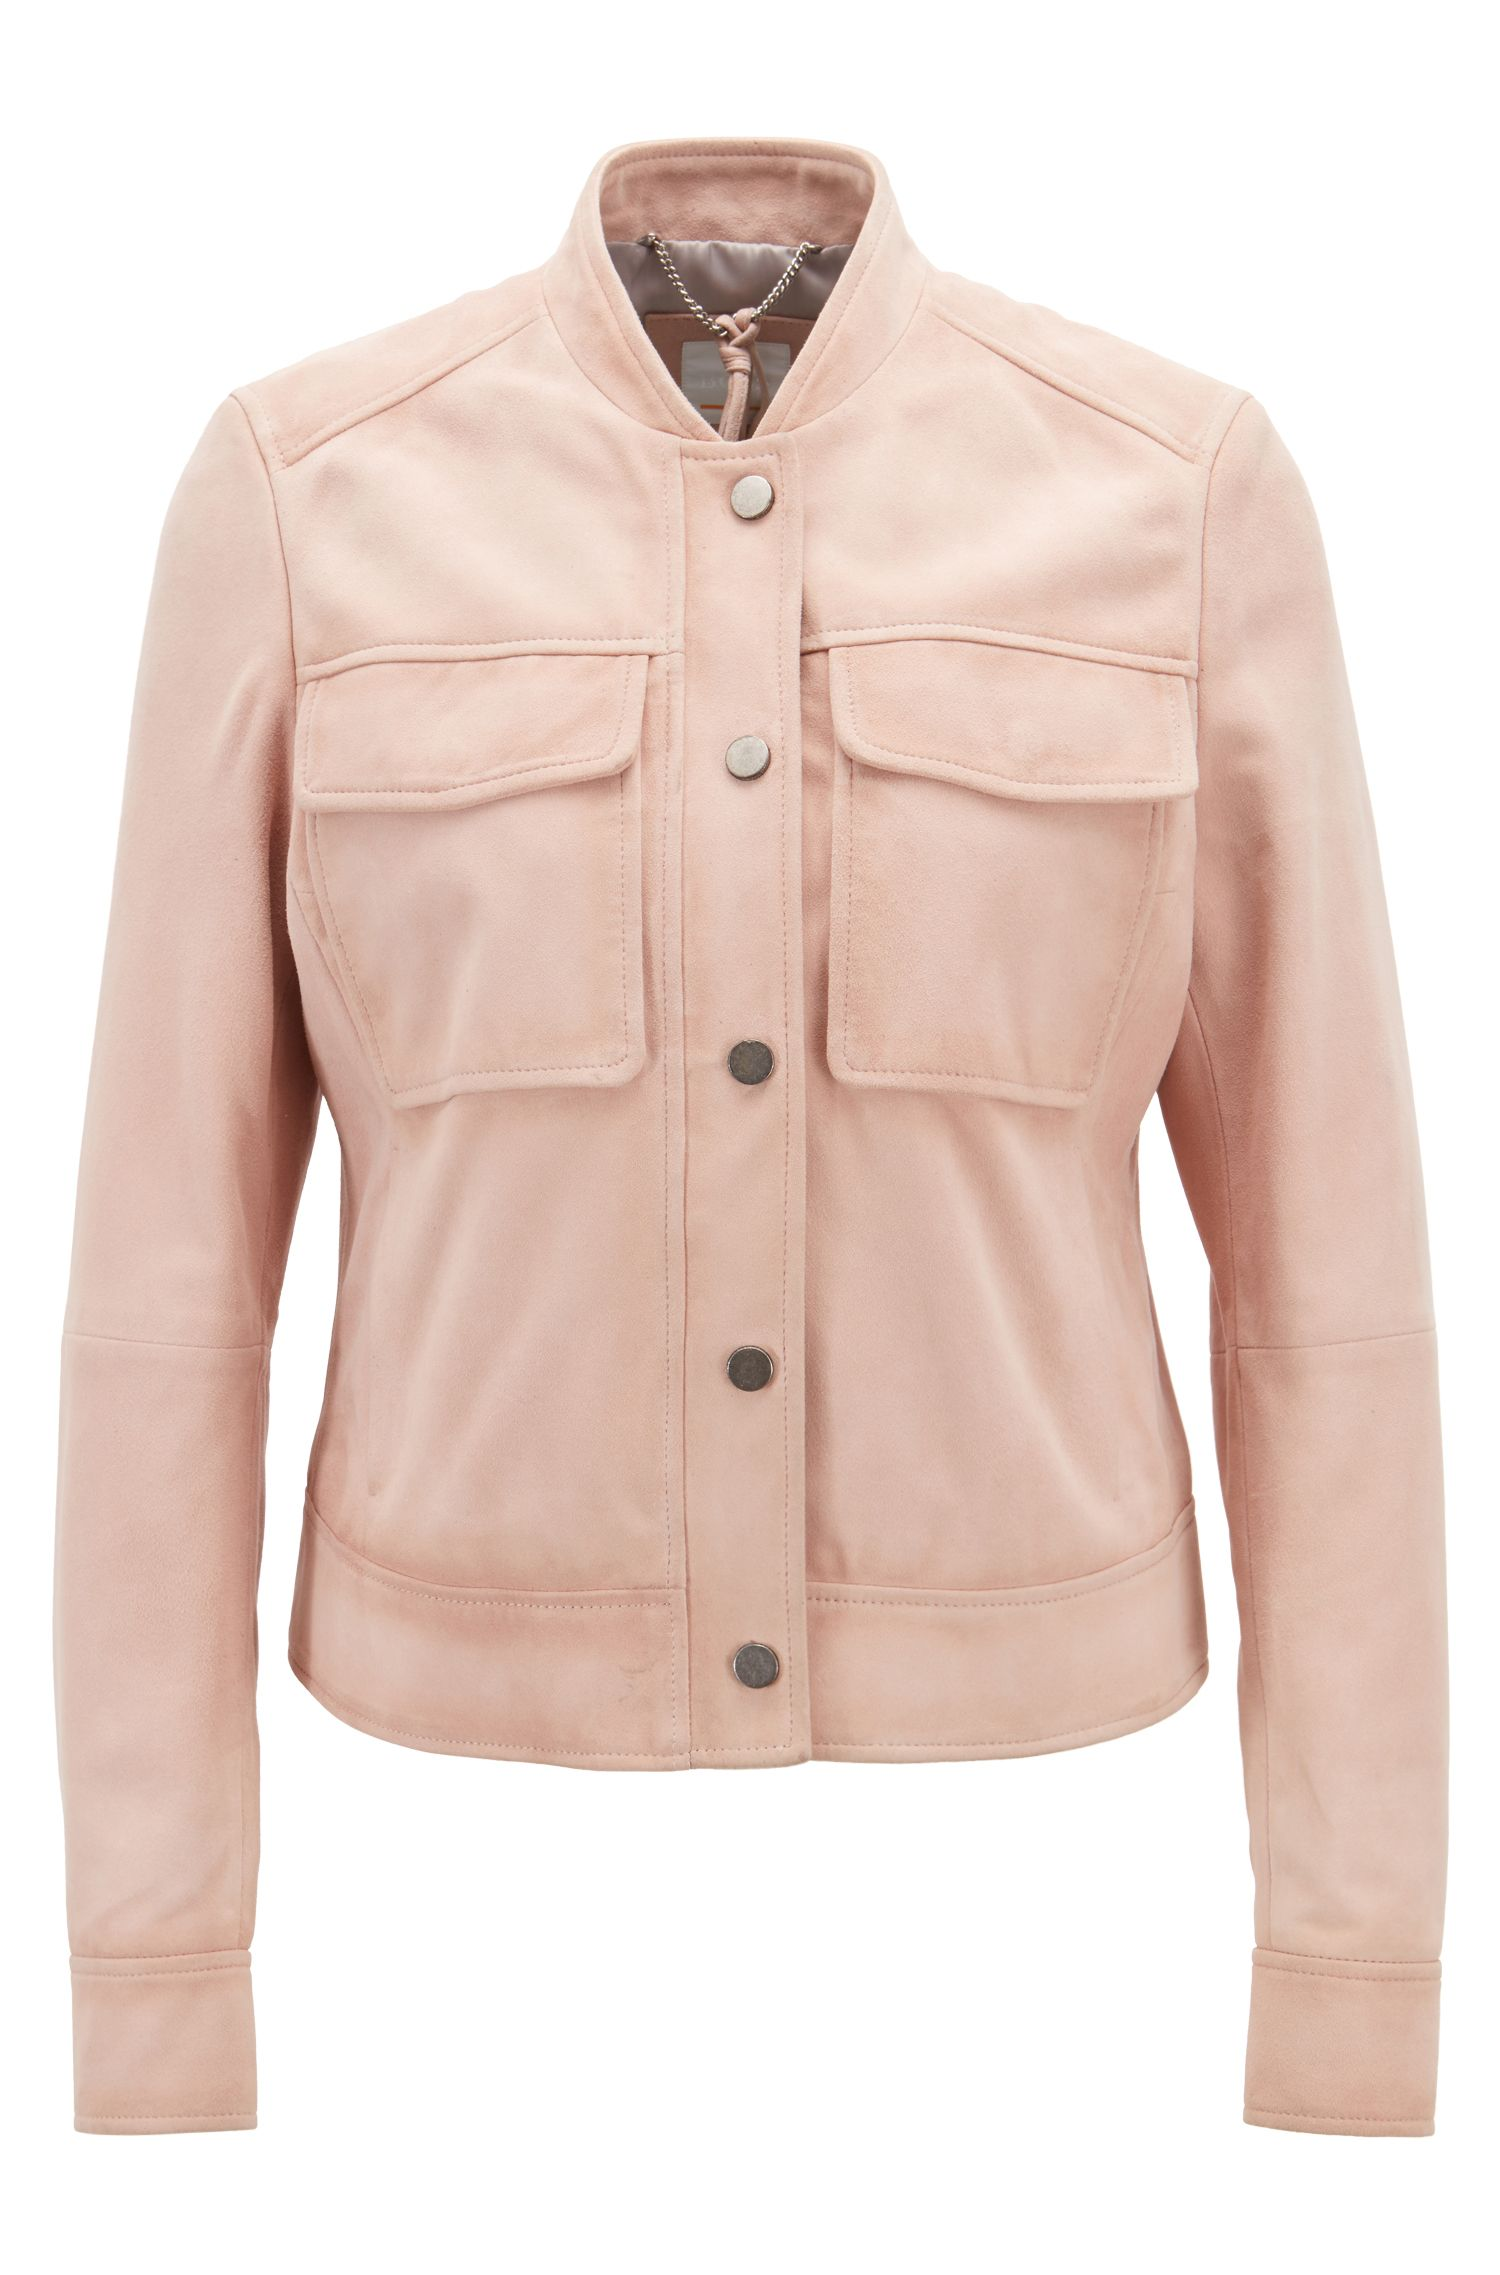 Hugo Boss - Bomber jacket in suede leather with patch pockets - 1